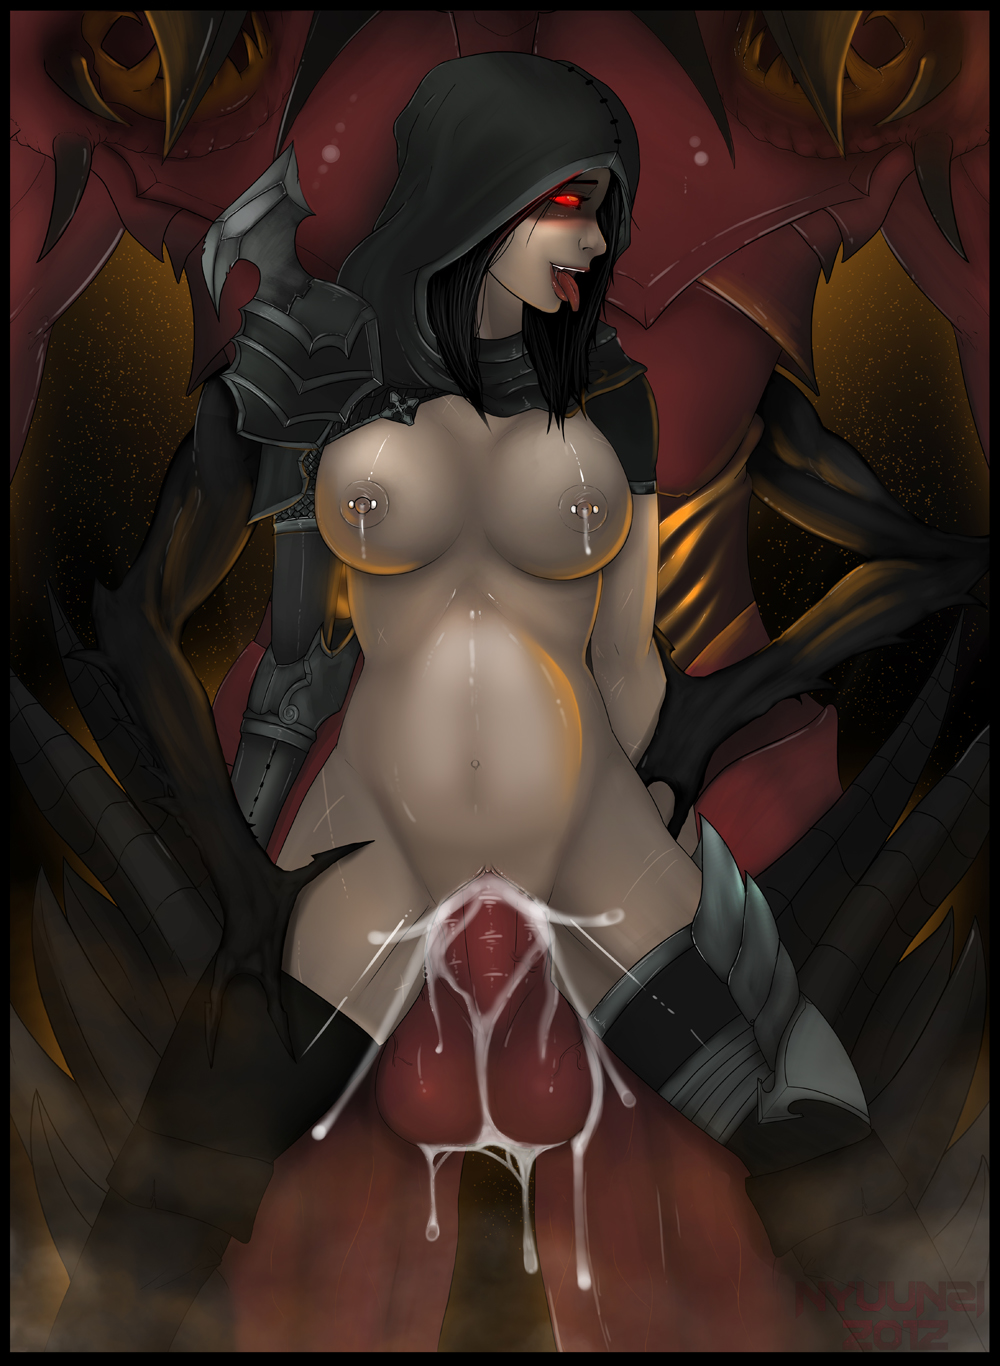 Diablo 3 cartoon sex exploited pics